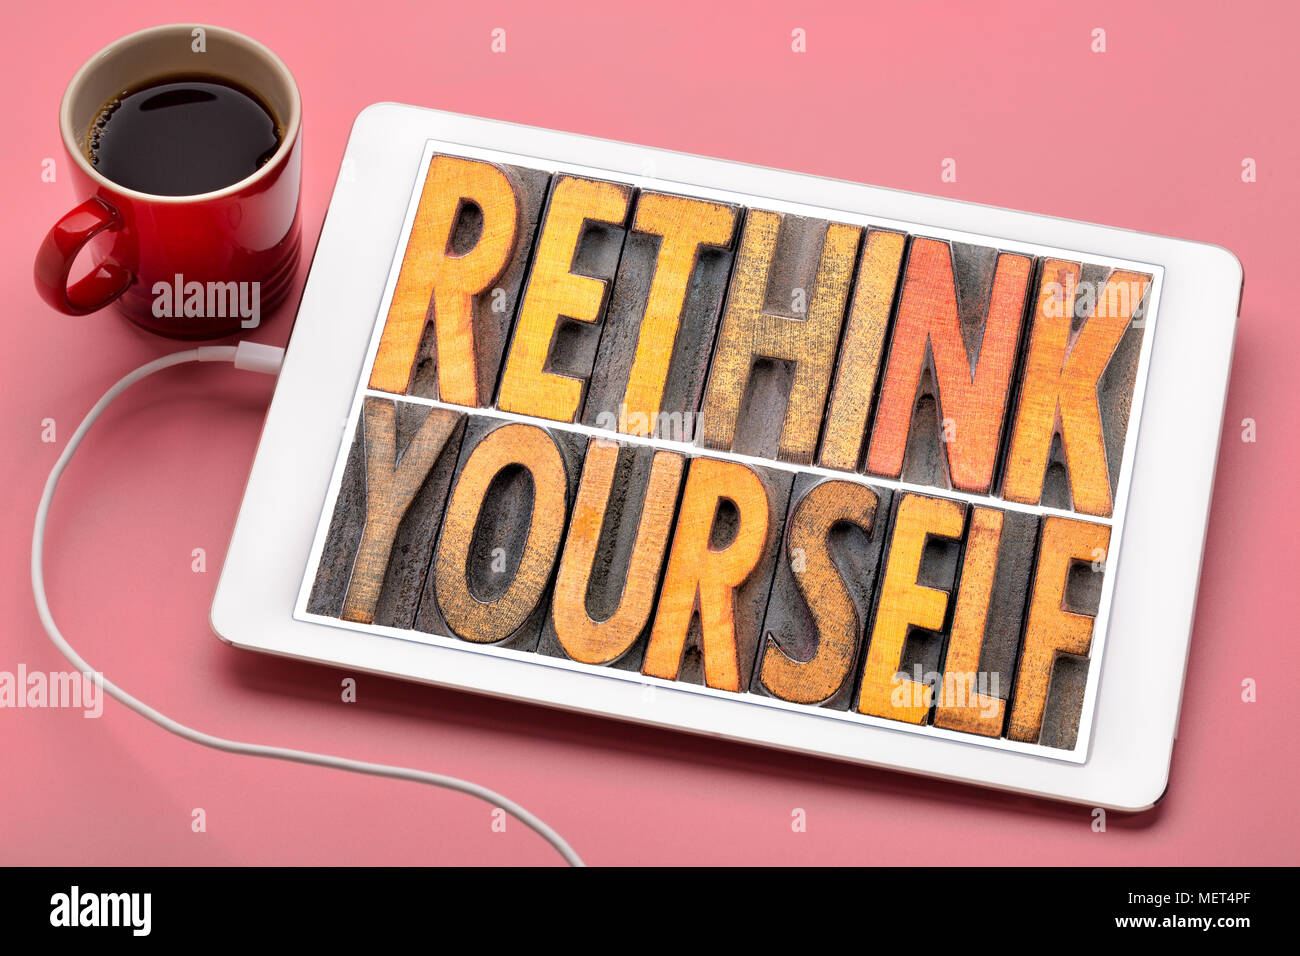 rethink yourself  word abstract in vintage letterpress wood type blocks on a digital tbalet with a cup of coffee - Stock Image